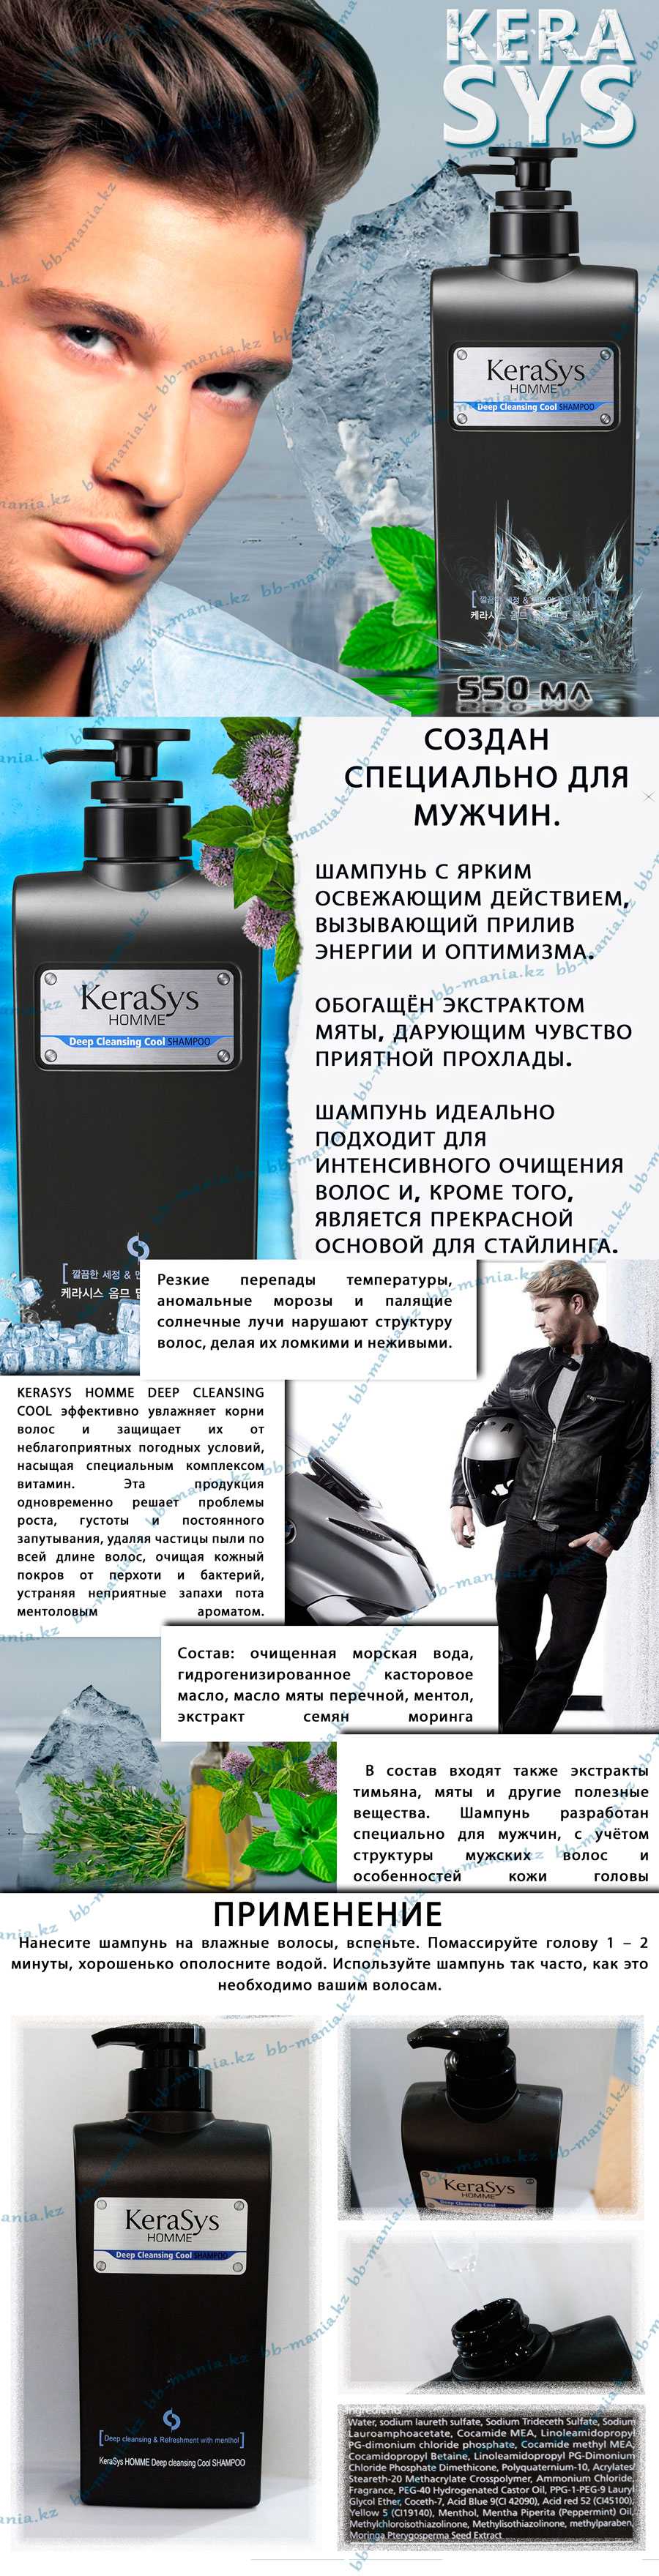 HOMME-Deep-Cleansing-Cool-Shampoo-[Kerasys]